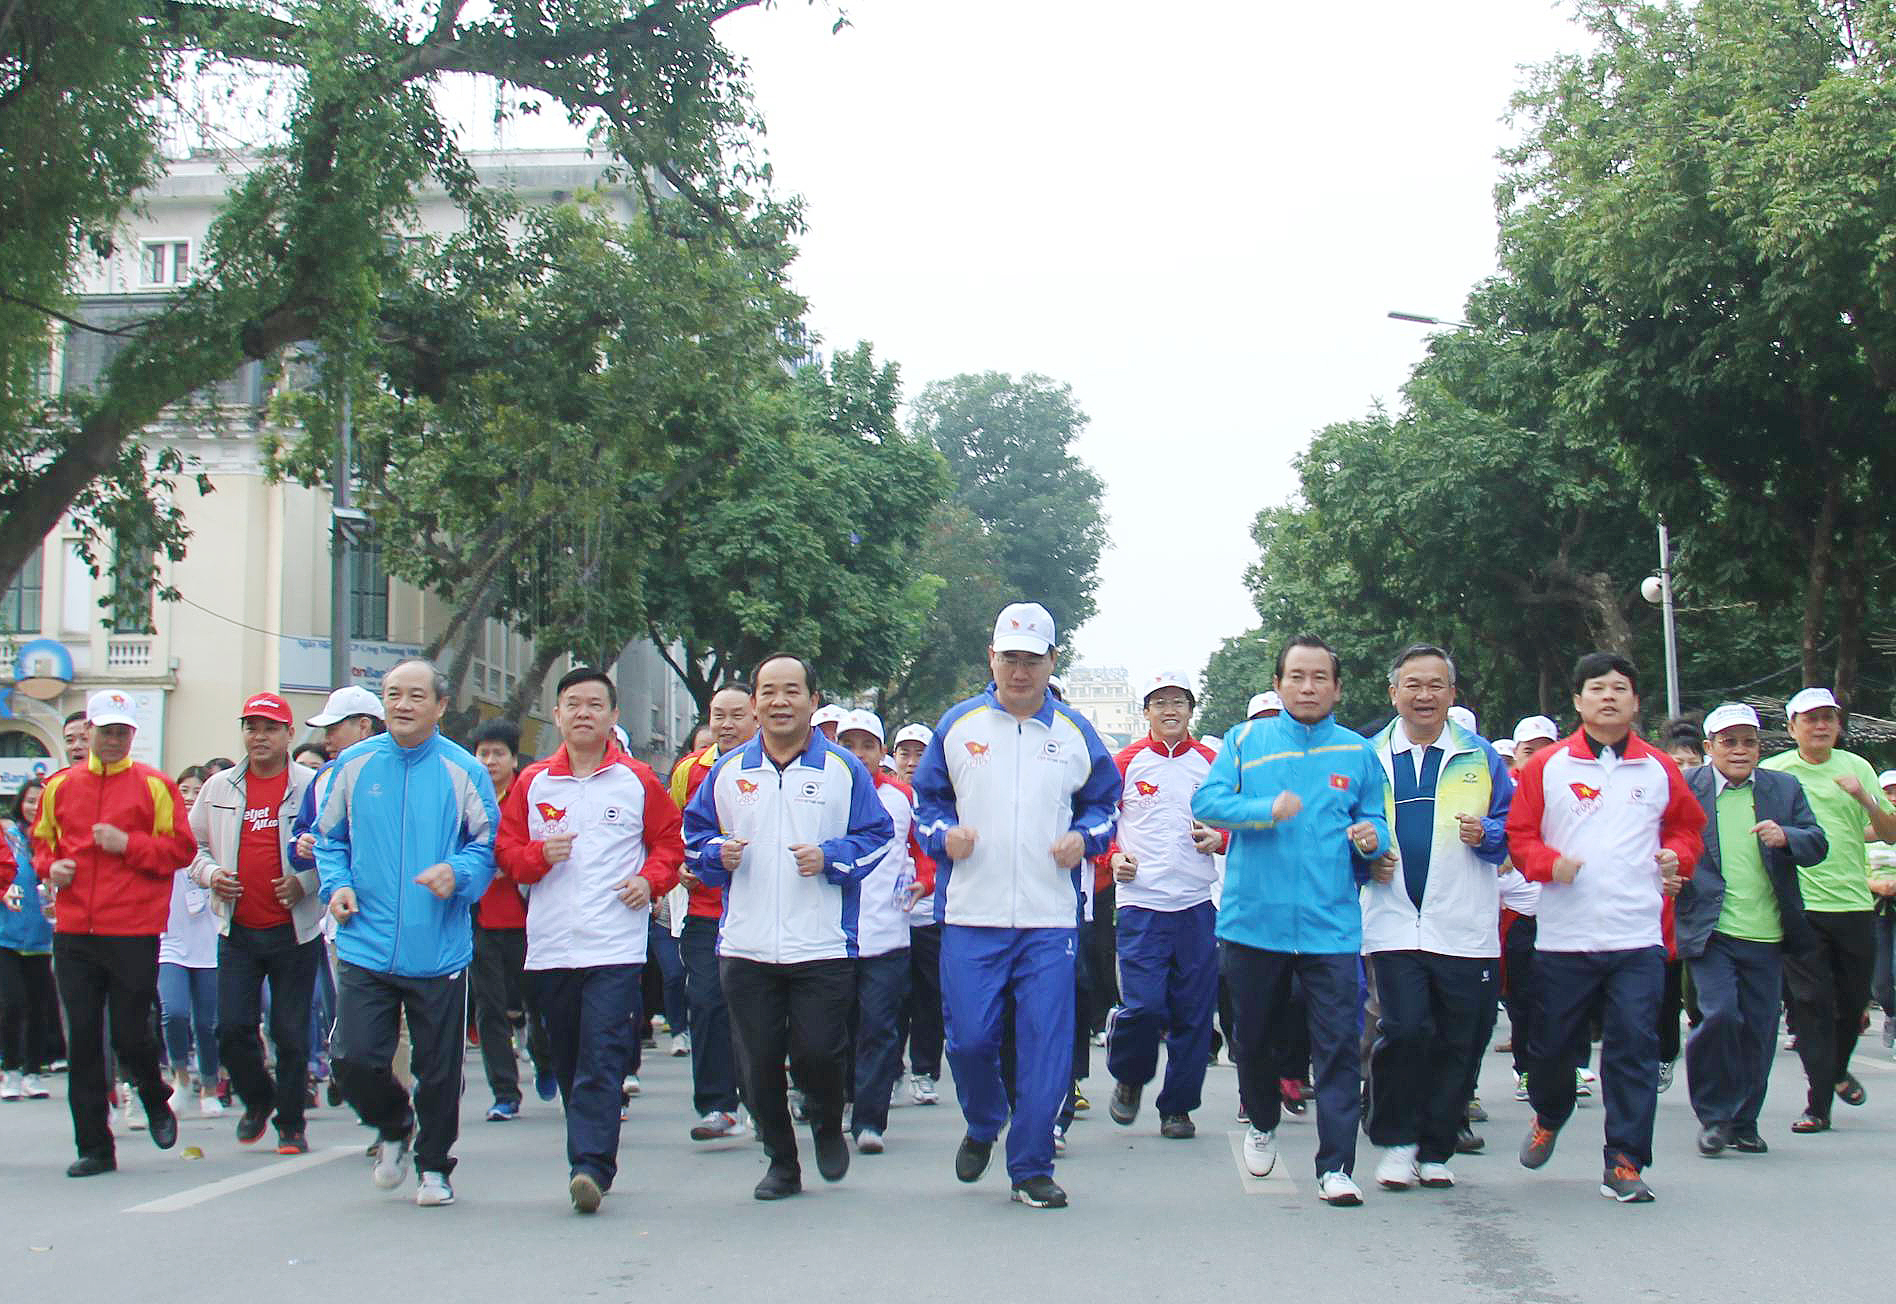 7.2 million people mobilized to Olympic Run Day 2017